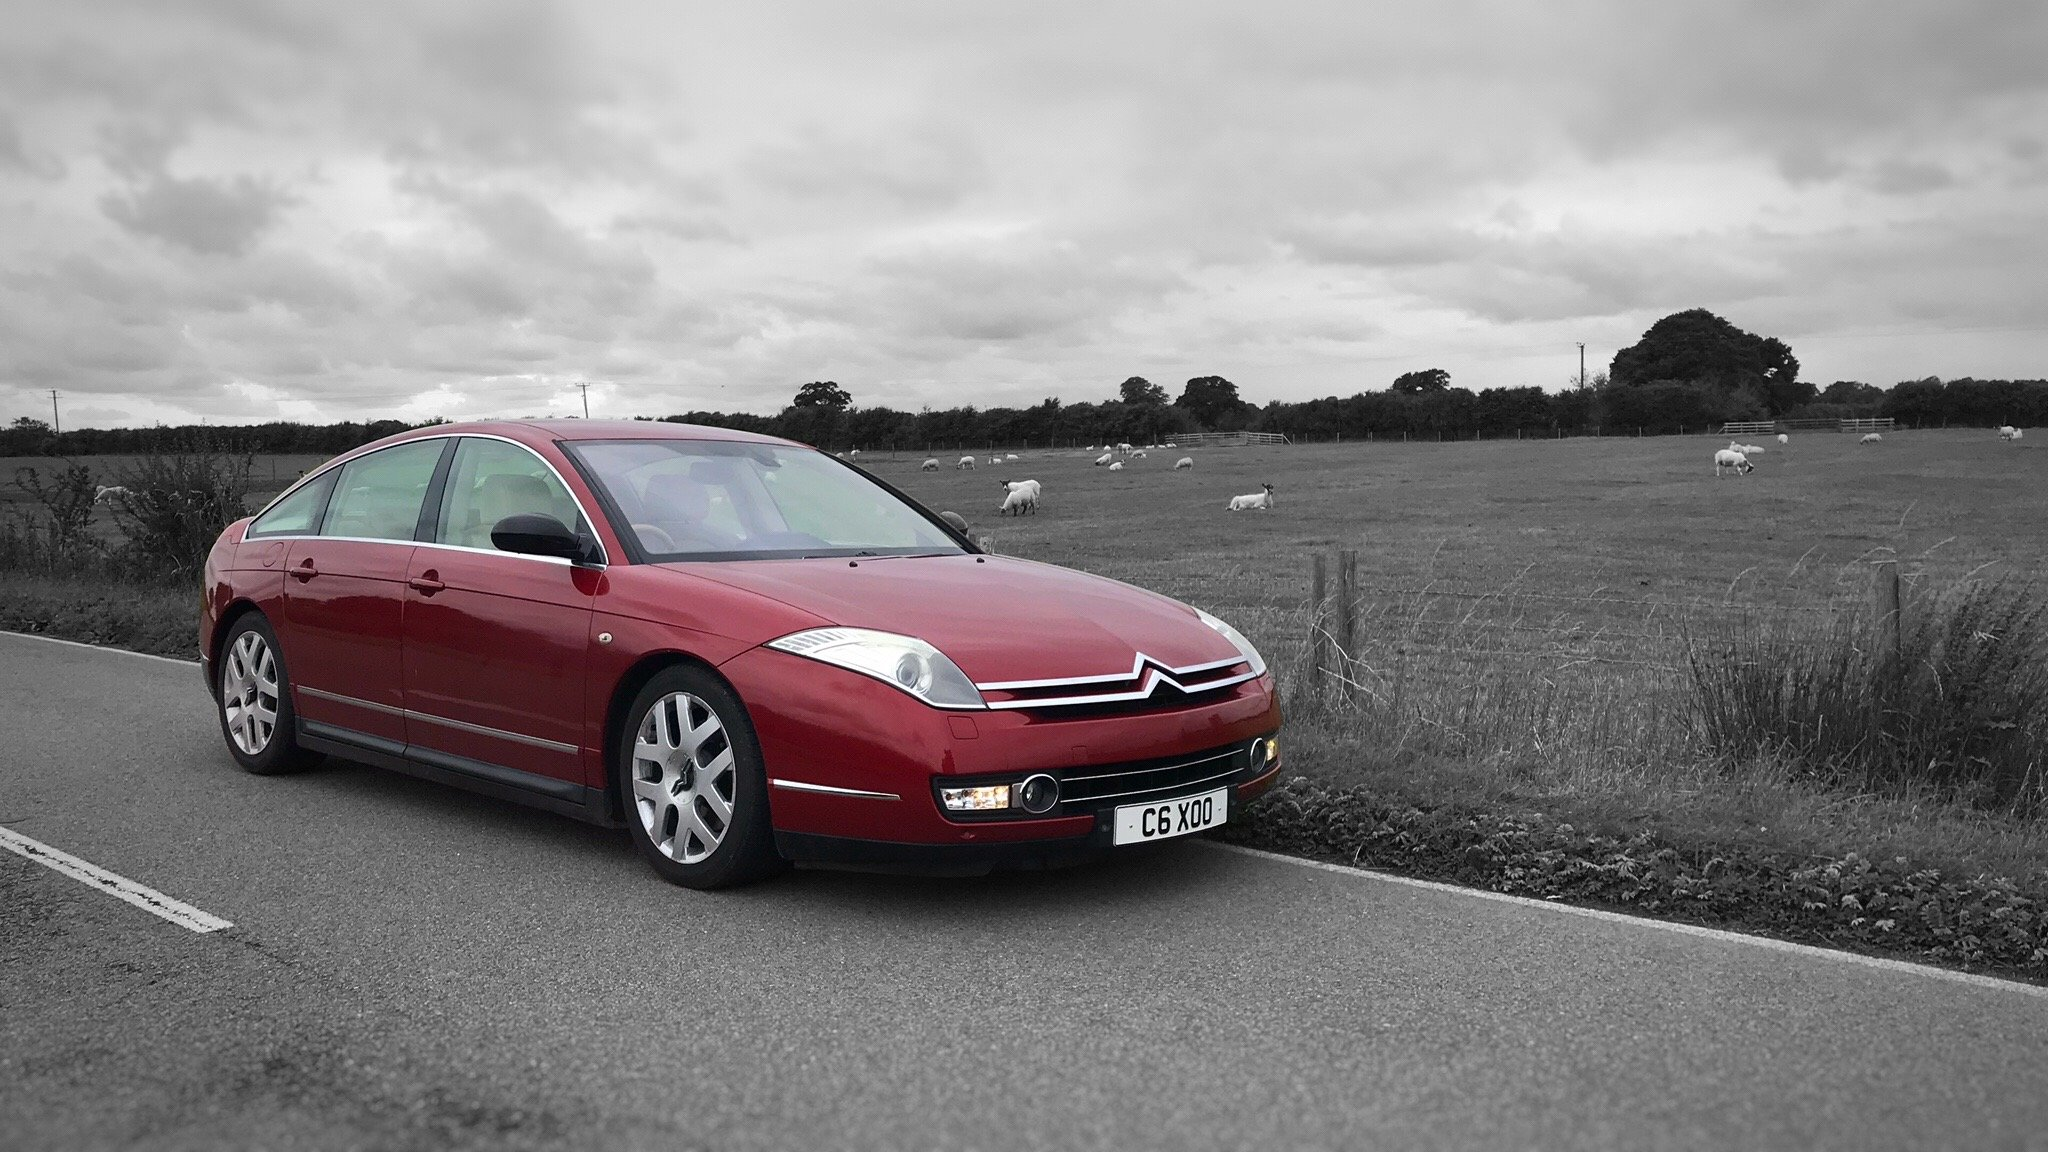 2008 Immaculate Citroen C6, FSH, Lounge Pack, Ultra Low Mileage SOLD (picture 2 of 6)